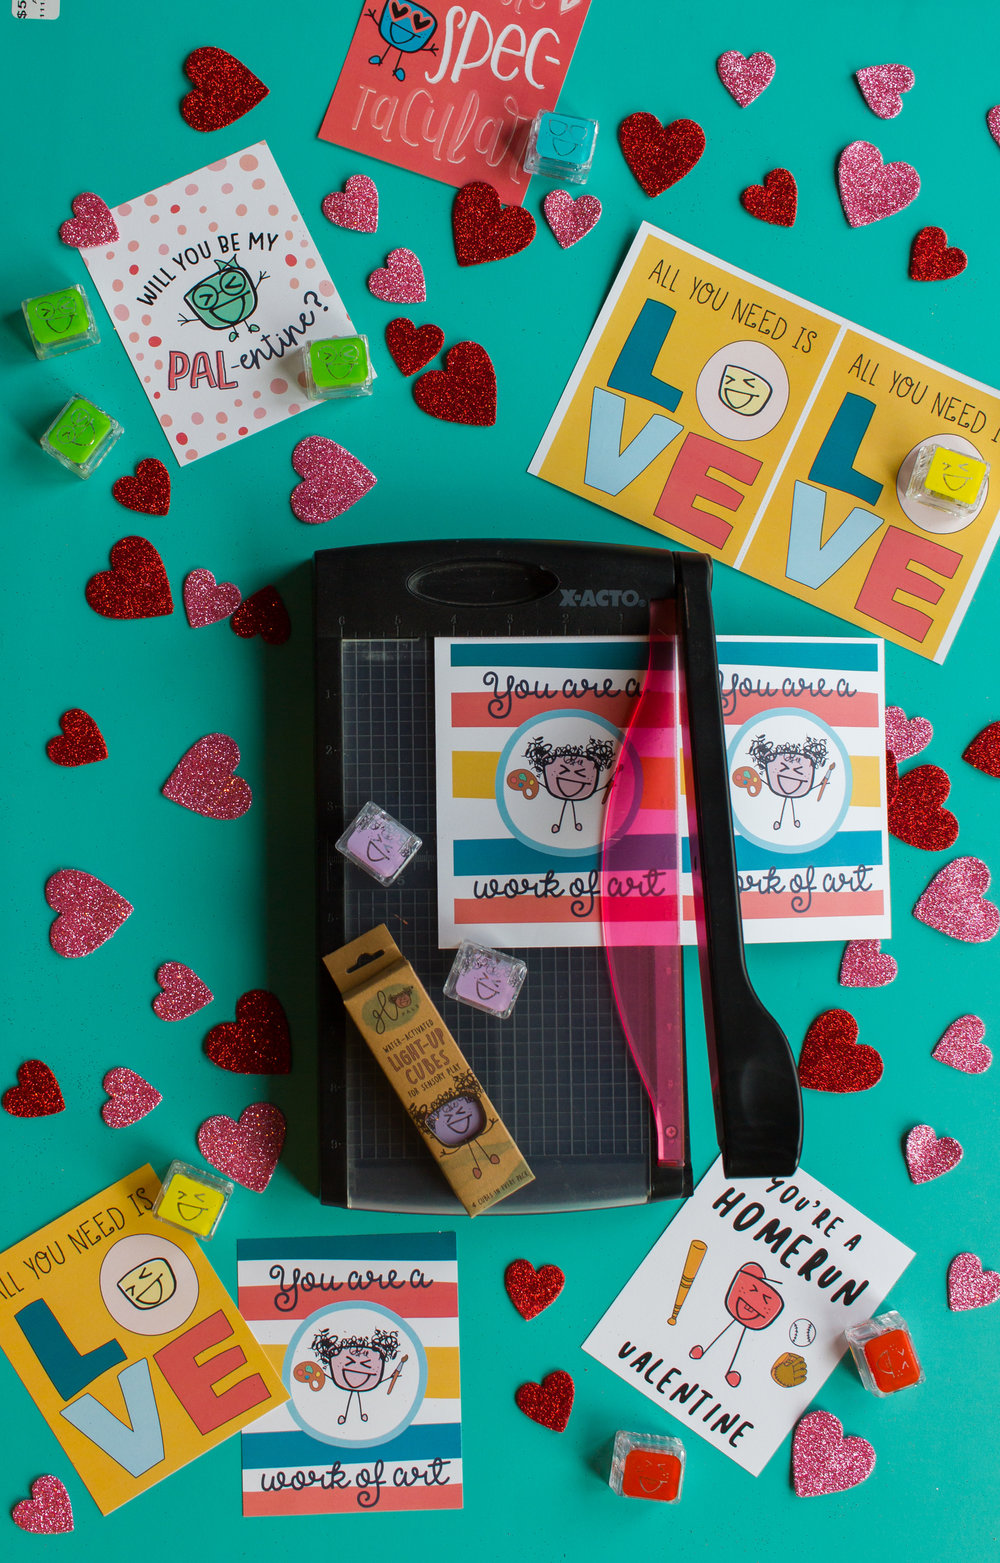 Print & Cut - Print your free PAL-entines card printable; make sure your print scale is set to 100% so your Glo Pal matches the face on the card! Carefully cut along the guides with a paper cutter or scissors.Closely supervise kids in this step! We don't want our Pals to get hurt!